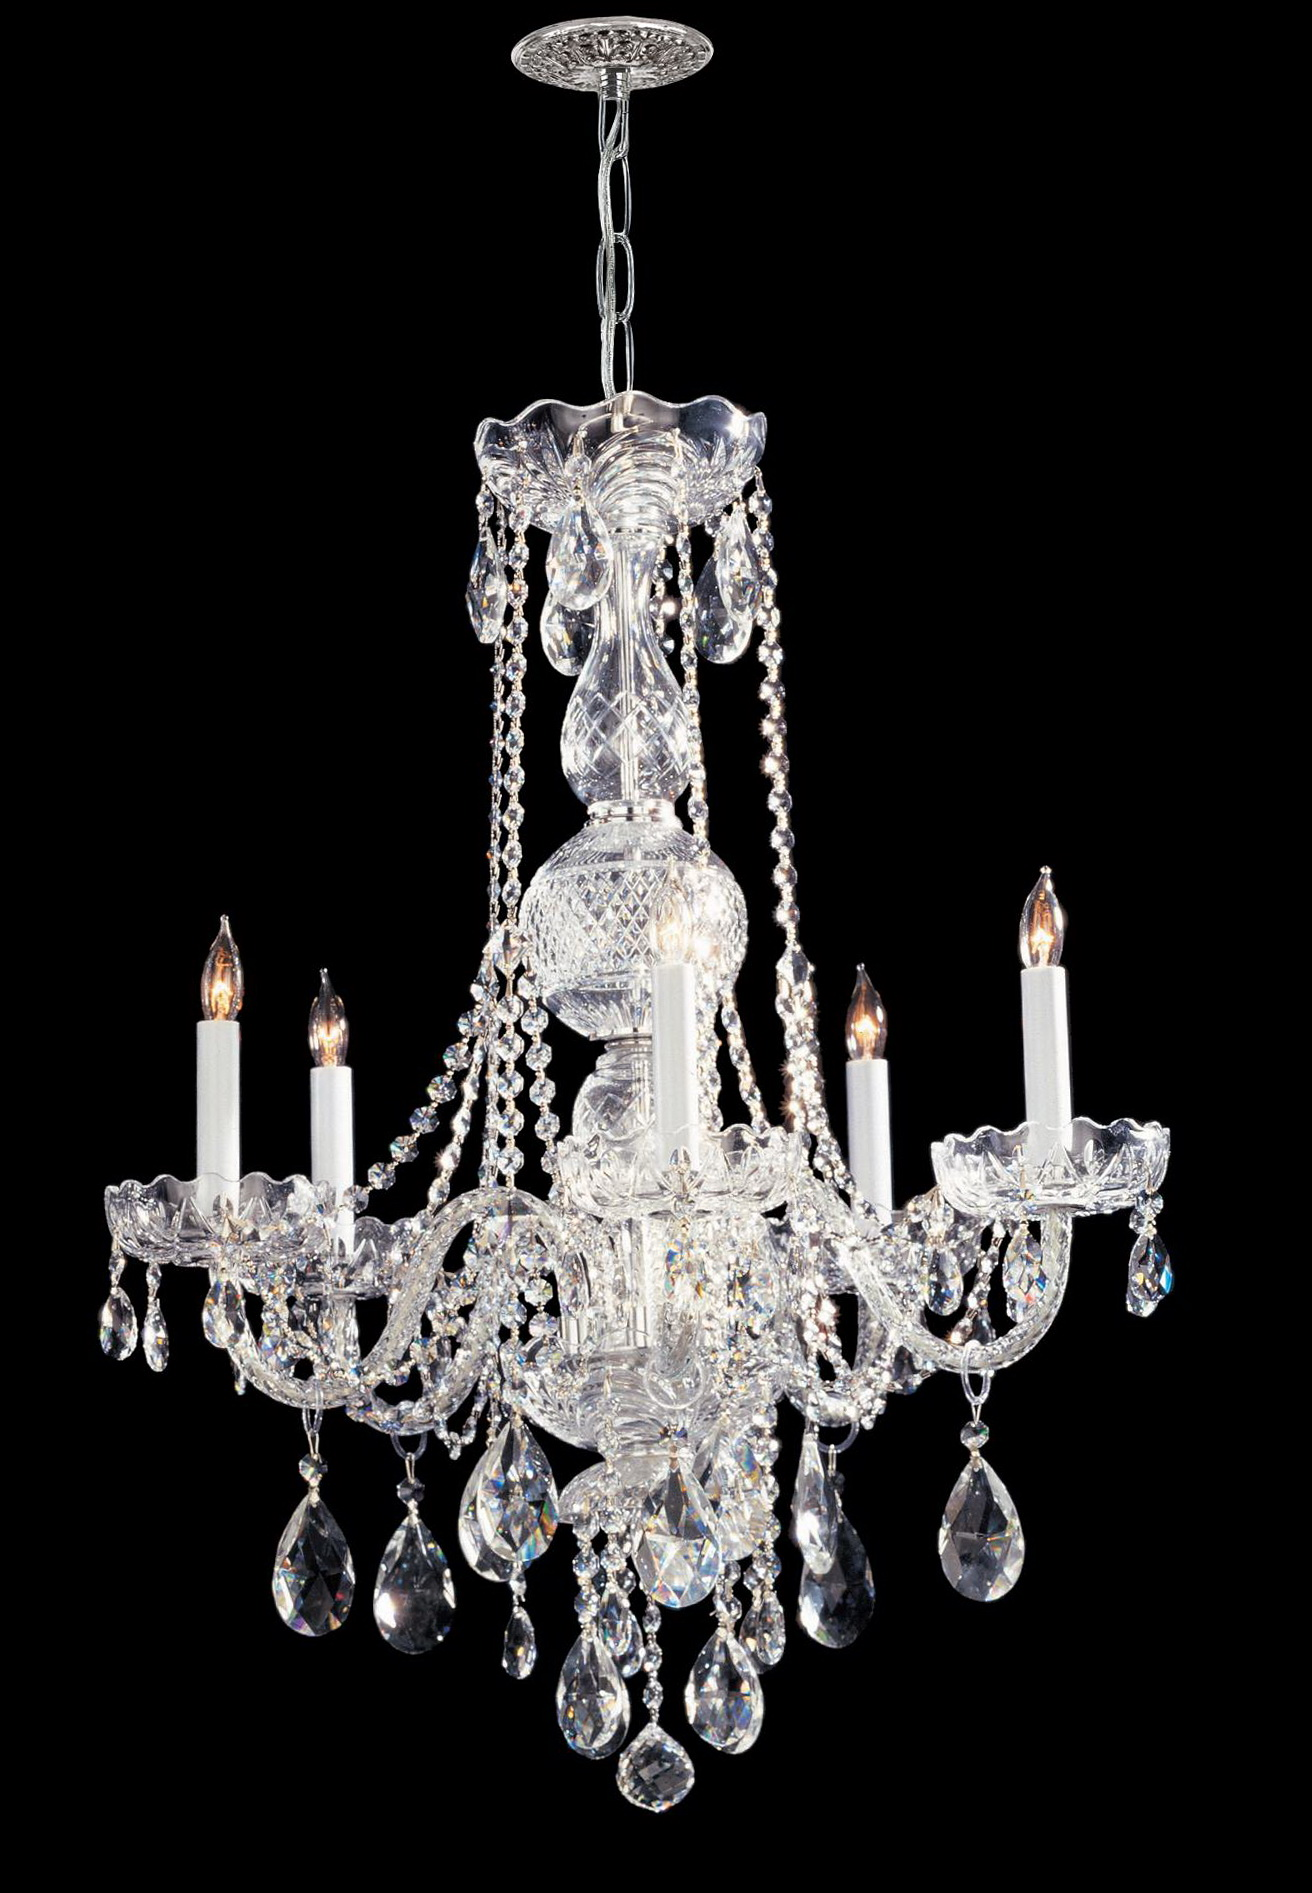 Swarovski Crystal Chandeliers Wholesale Home Design Ideas